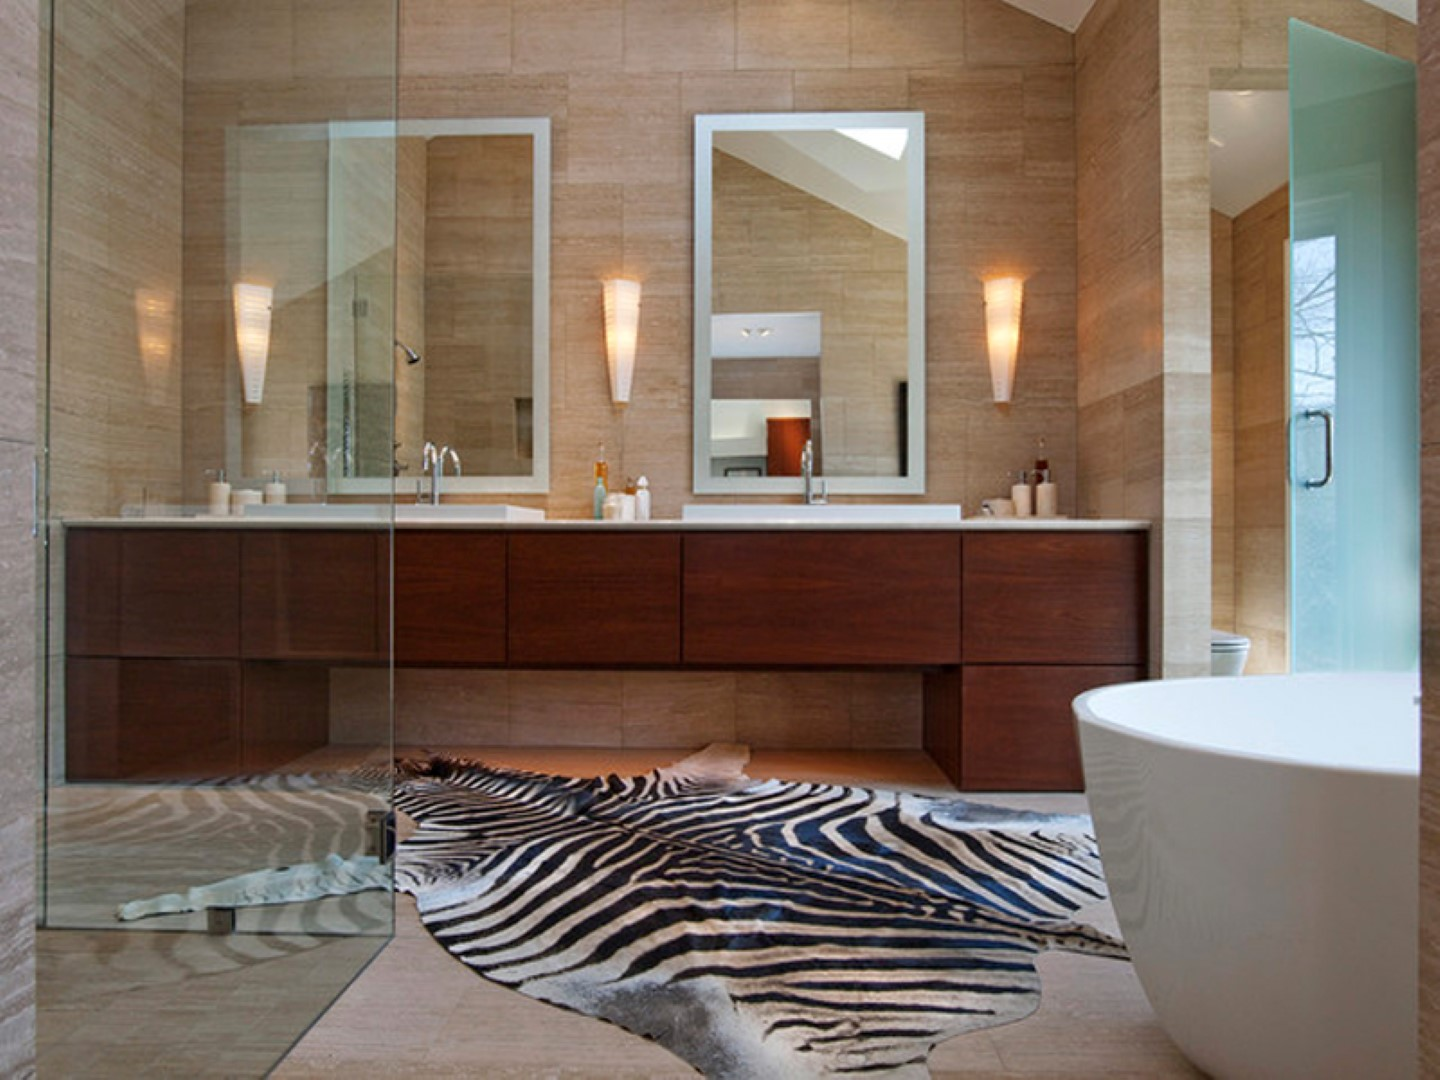 stylish zebrahid bathroom contemporary rug design with wooden vanity and framed wall mirror and white bathtub and beige wooden wall